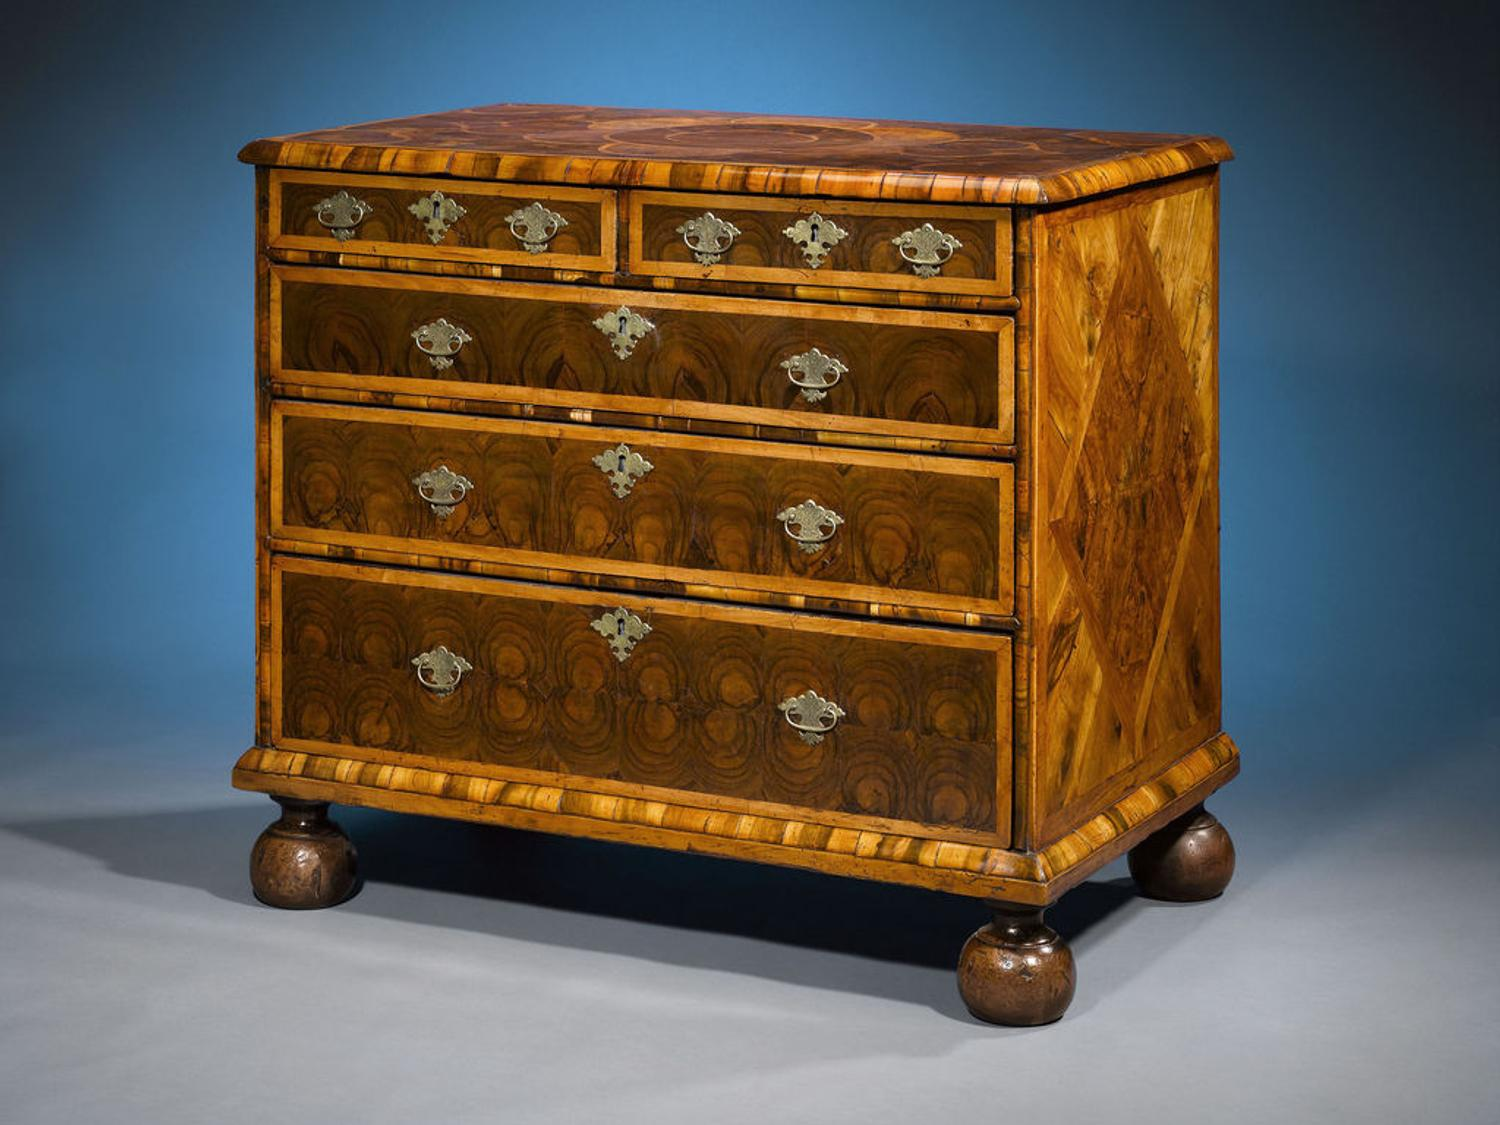 Continental Inspirations: The Furniture Of William And Mary   Beauty,  Rarity, History...The M.S. Rau Antiques Blog Blog From ArtfixDaily.com